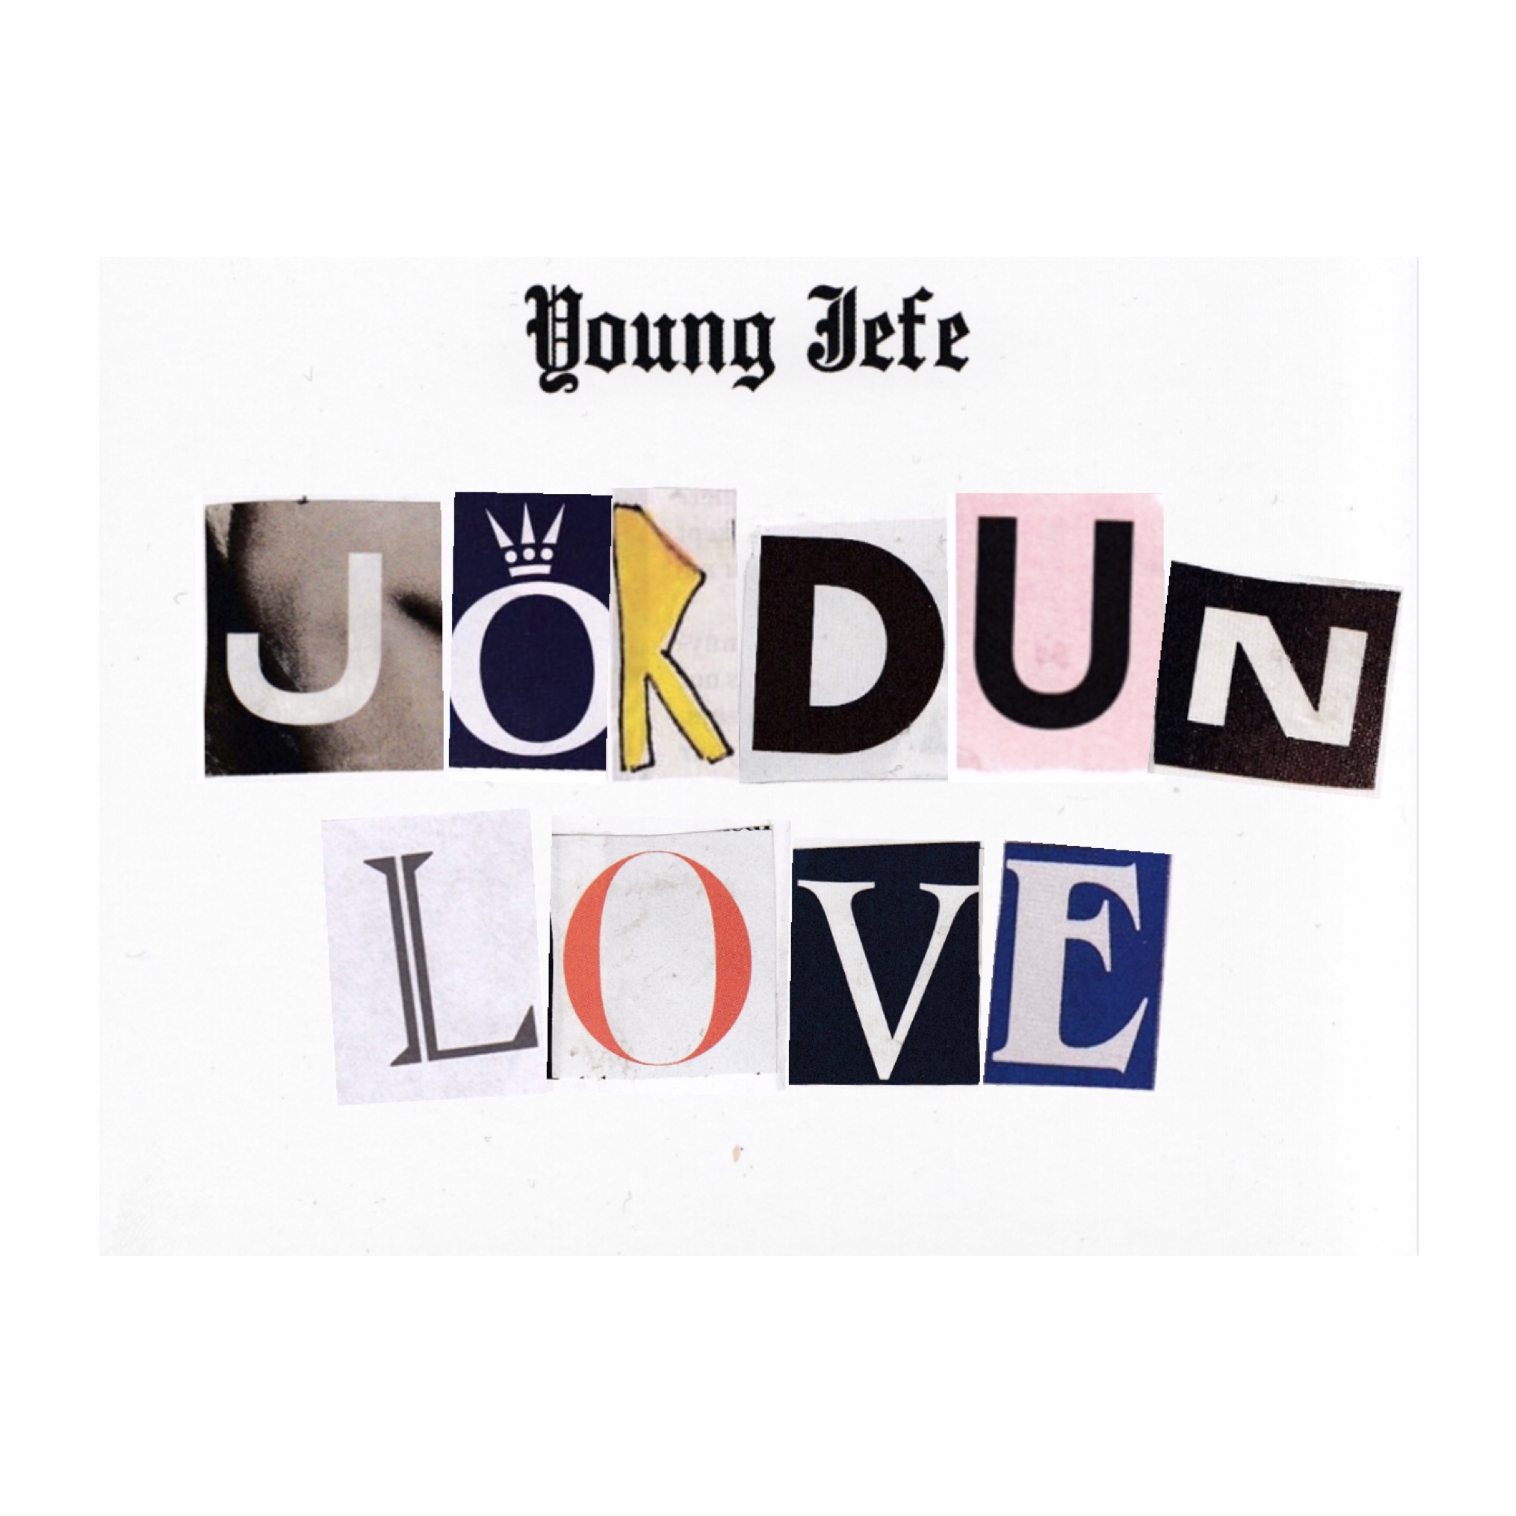 Jordun Love Young Jefe.png